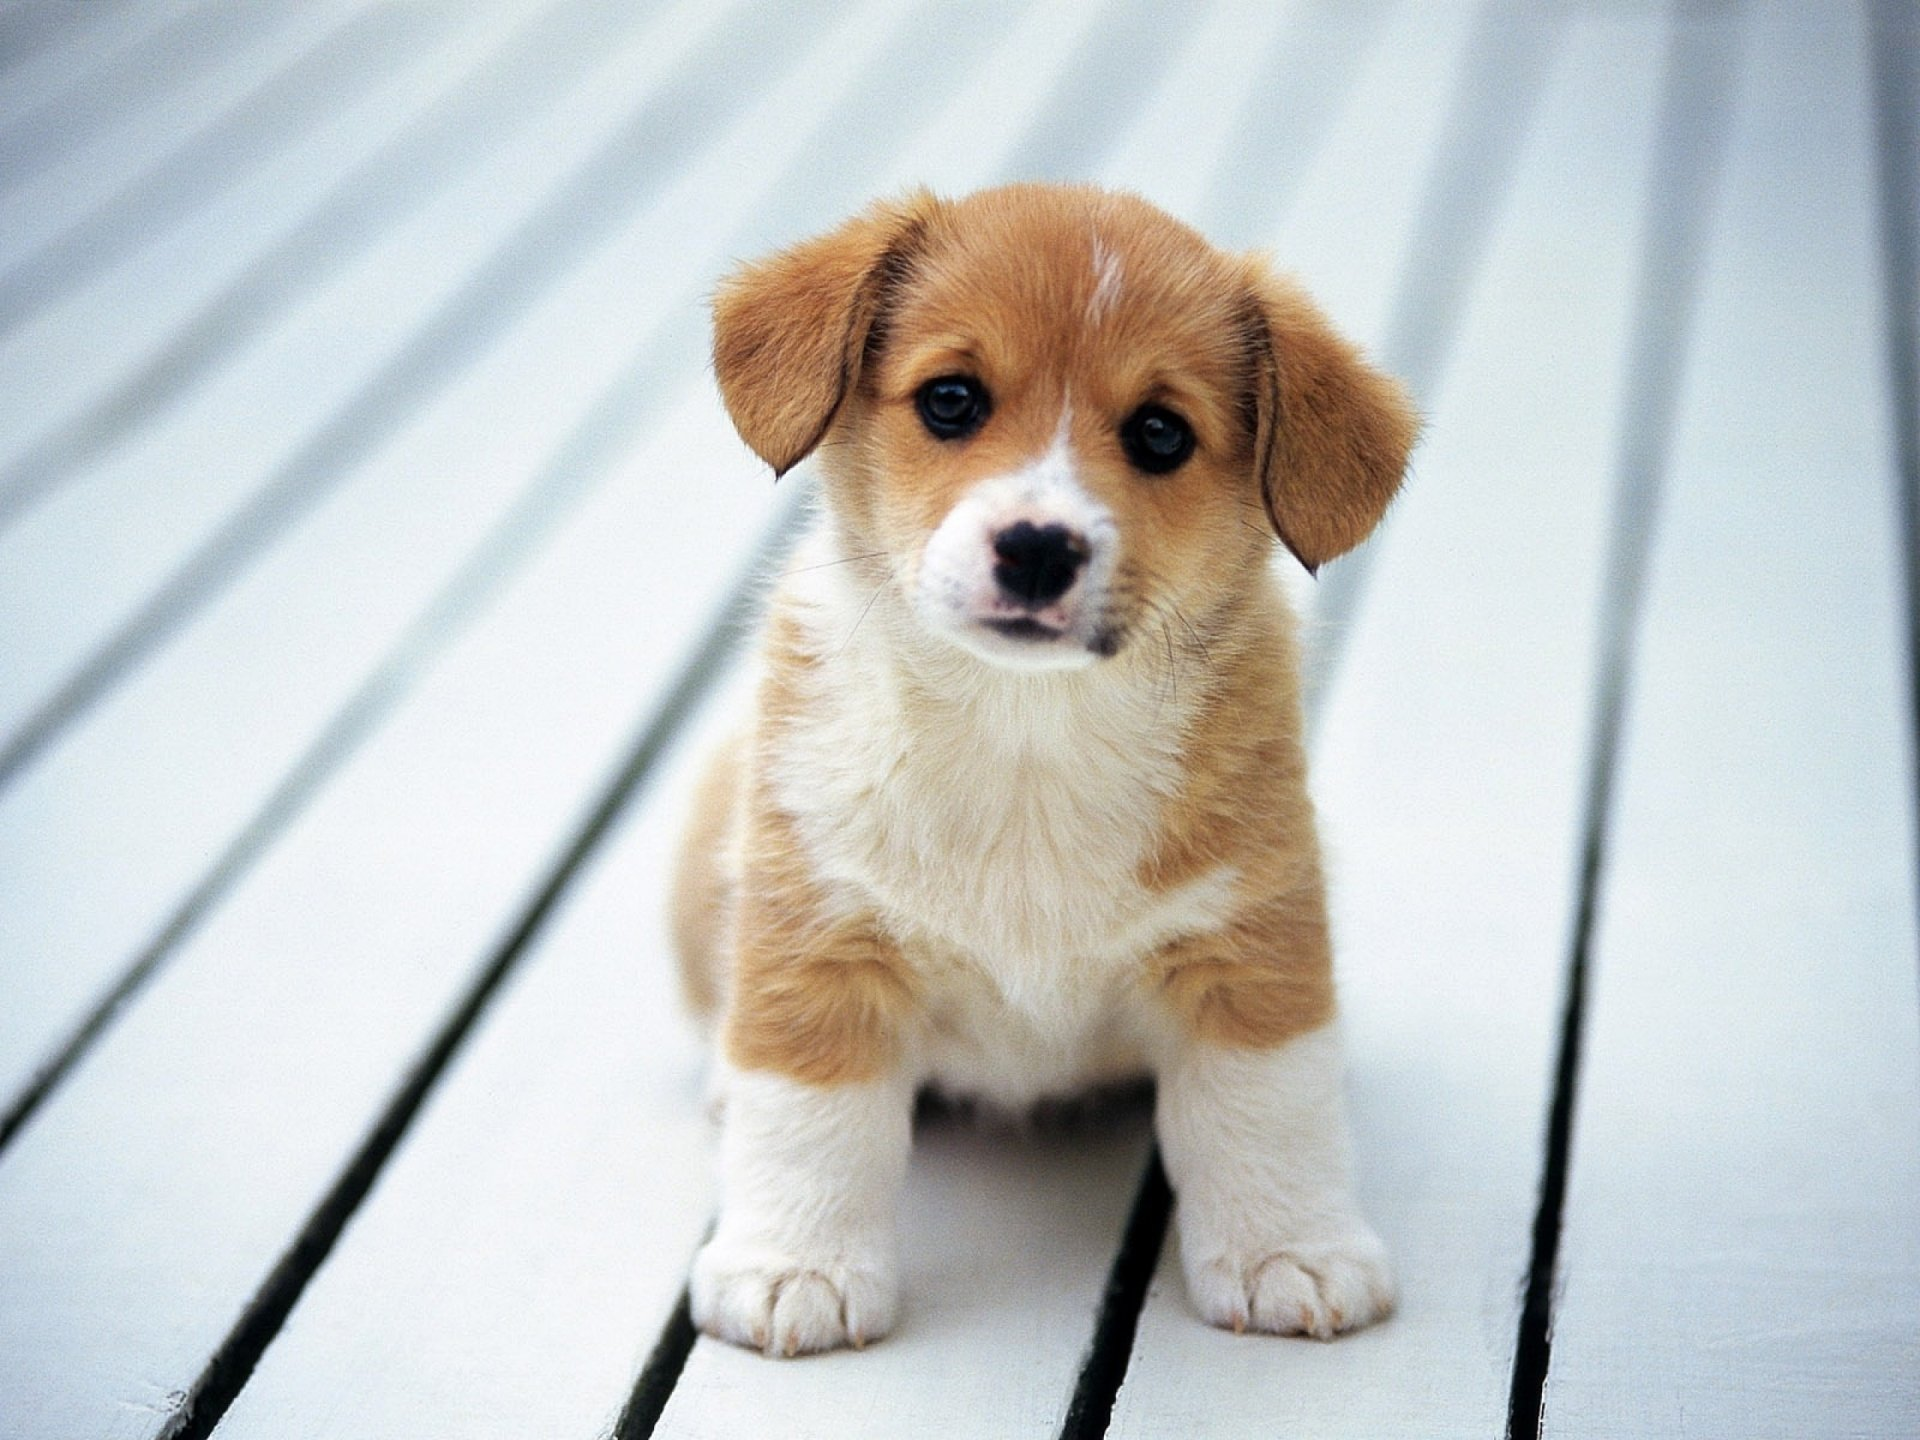 2650 Dog HD Wallpapers Background Images 1920x1440